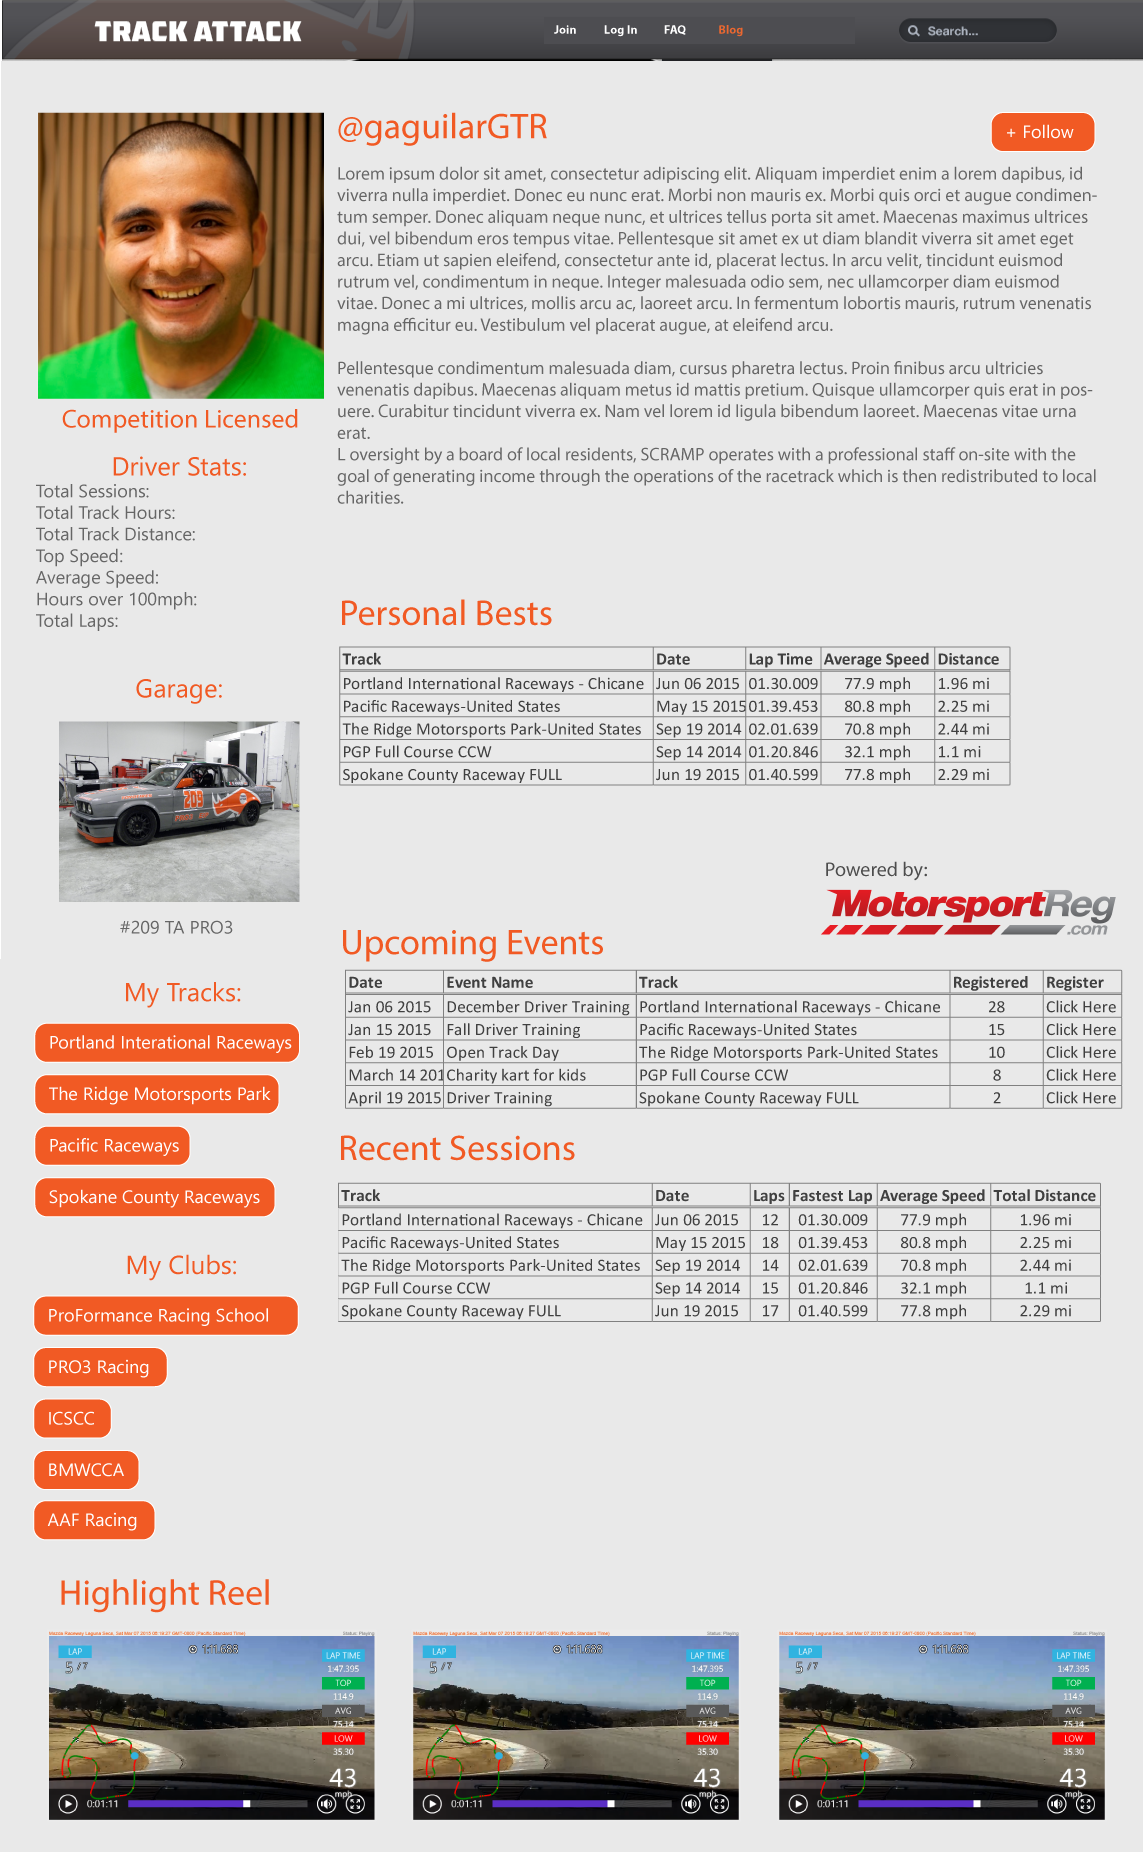 Track-Attack-Platform-Driver-Profile-Page-cropped.png